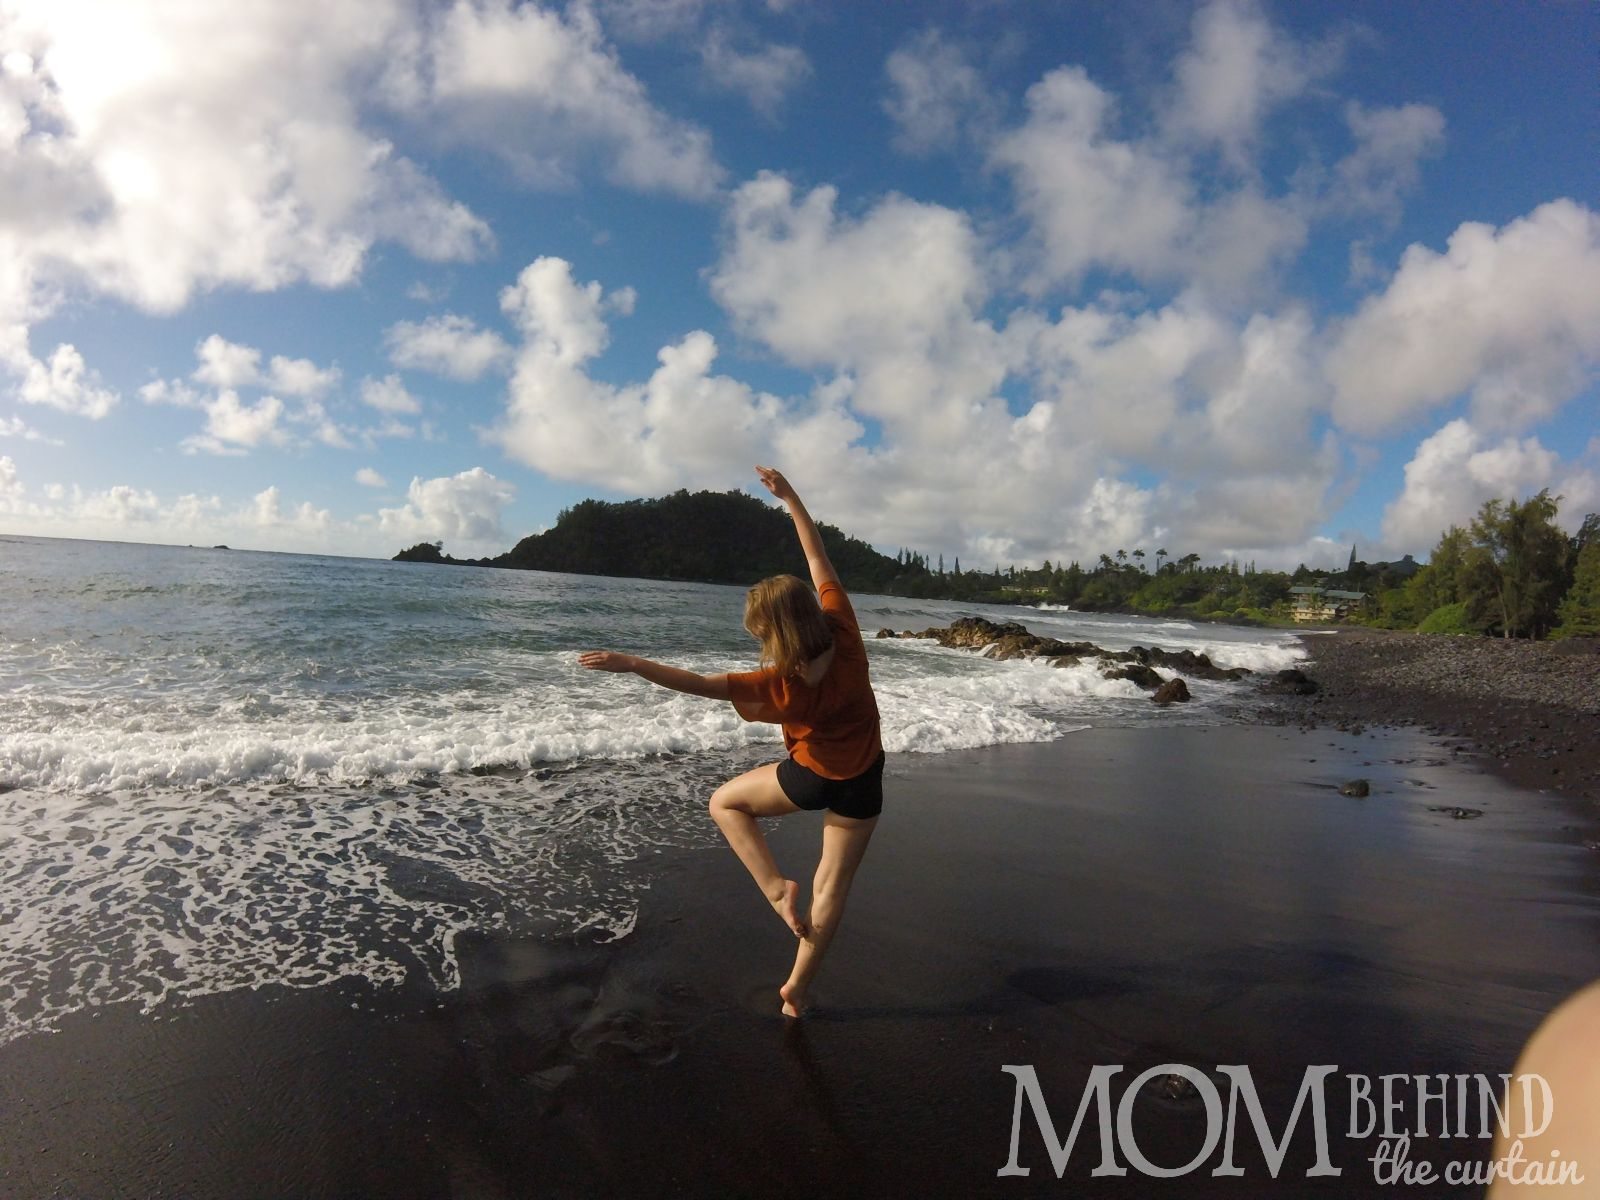 In Hawaii with teens? There's going to be lots of photos taken on the beach, like this photo of my teen girl posing on a black beach on Maui.Hawaii with teens, 8 tips for the best trip - Hawaii is one of the best places to vacation with teens. Our family vacation to Maui was one of the best we've ever had. Read on for tips about where to stay, what to do, and how to plan the best vacation ever to make memories in Hawaii with teens!